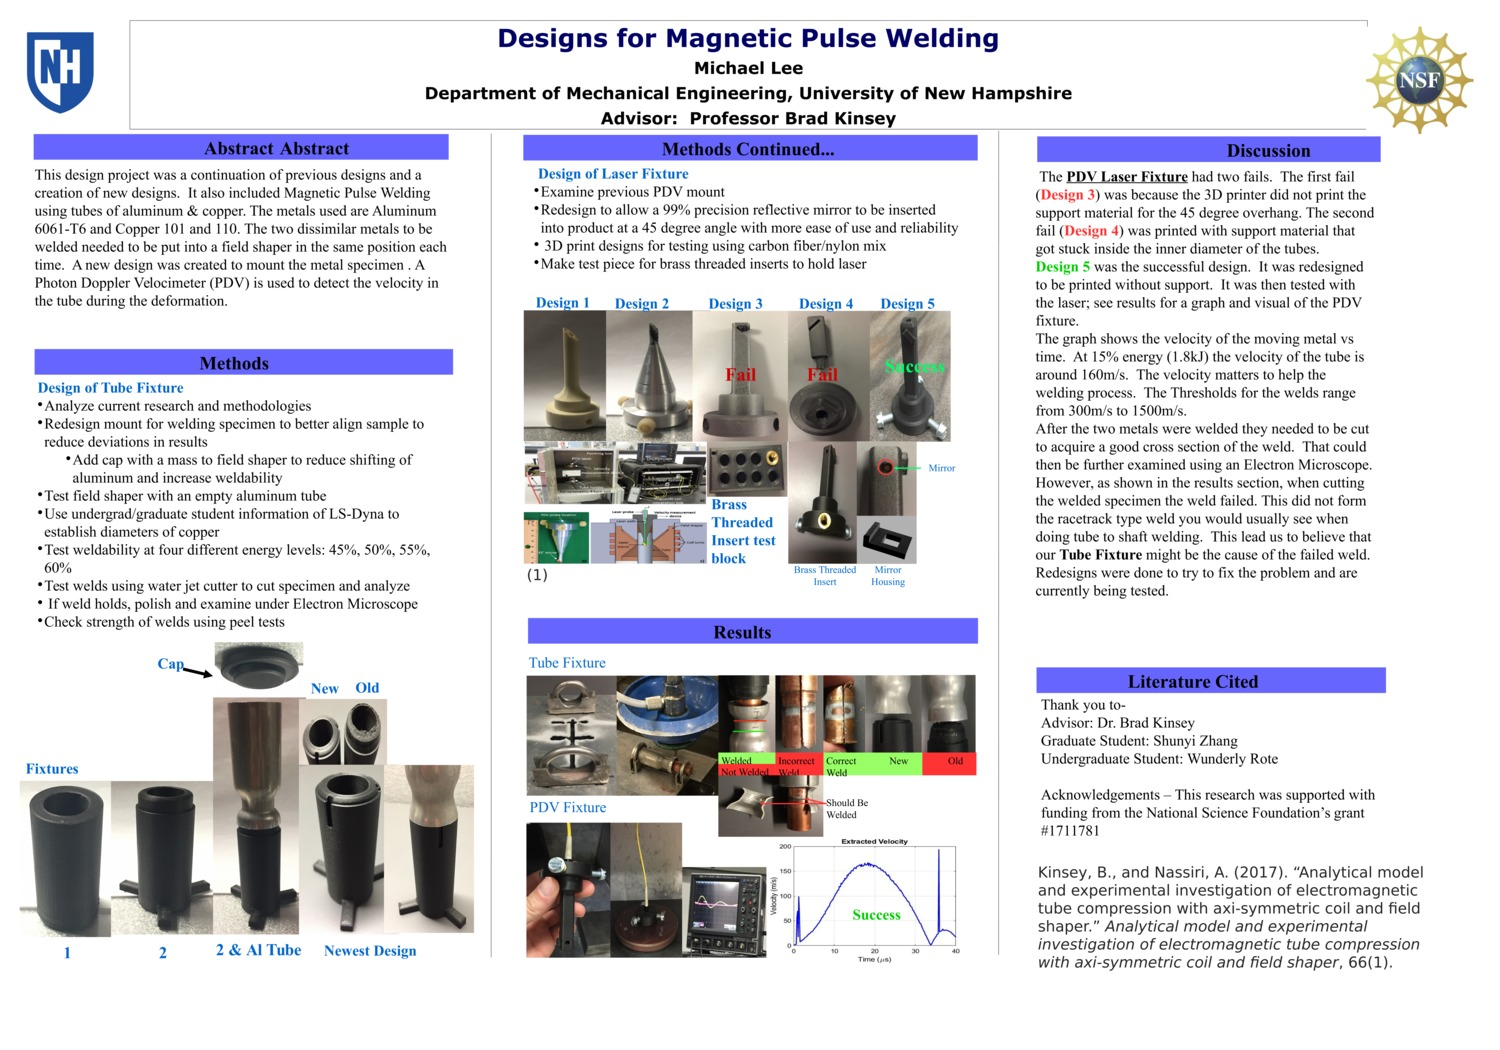 Designs For Magnetic Pulse Welding by wr1001